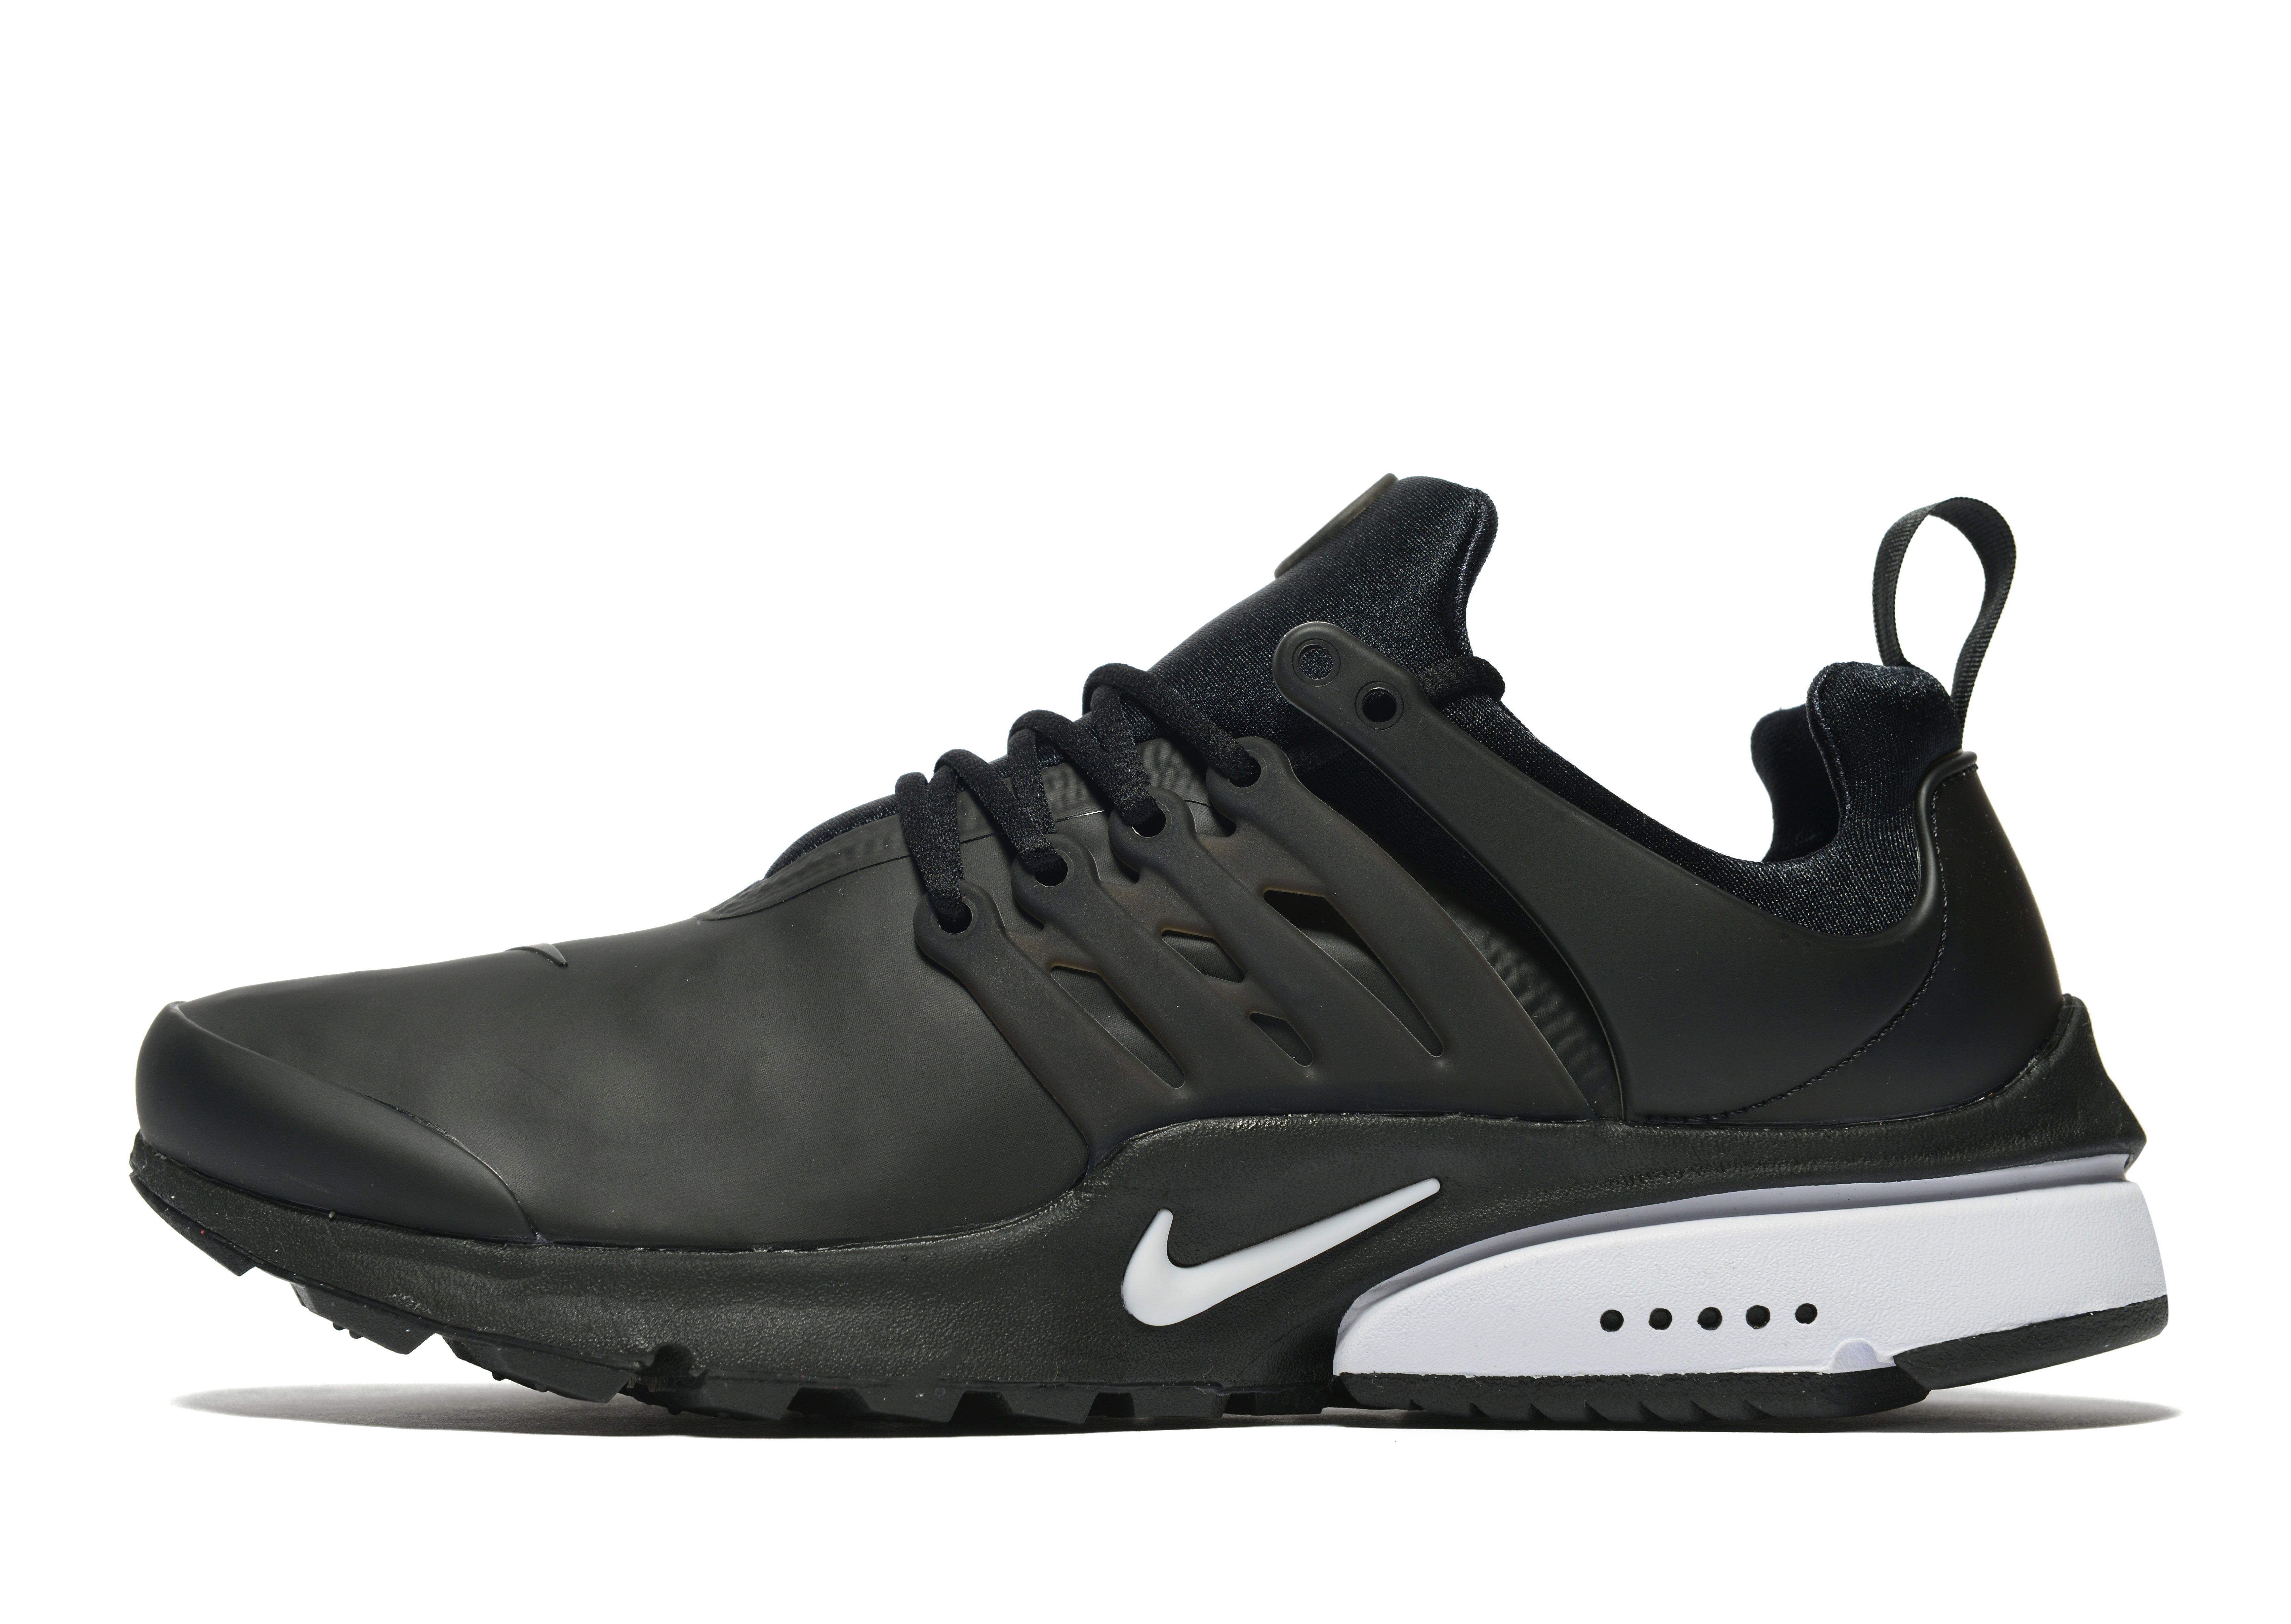 f0b791f61472 ... Black Shoe 862749 001 Nike Air Presto Low Utility JD Sports Detailed  Look At ...